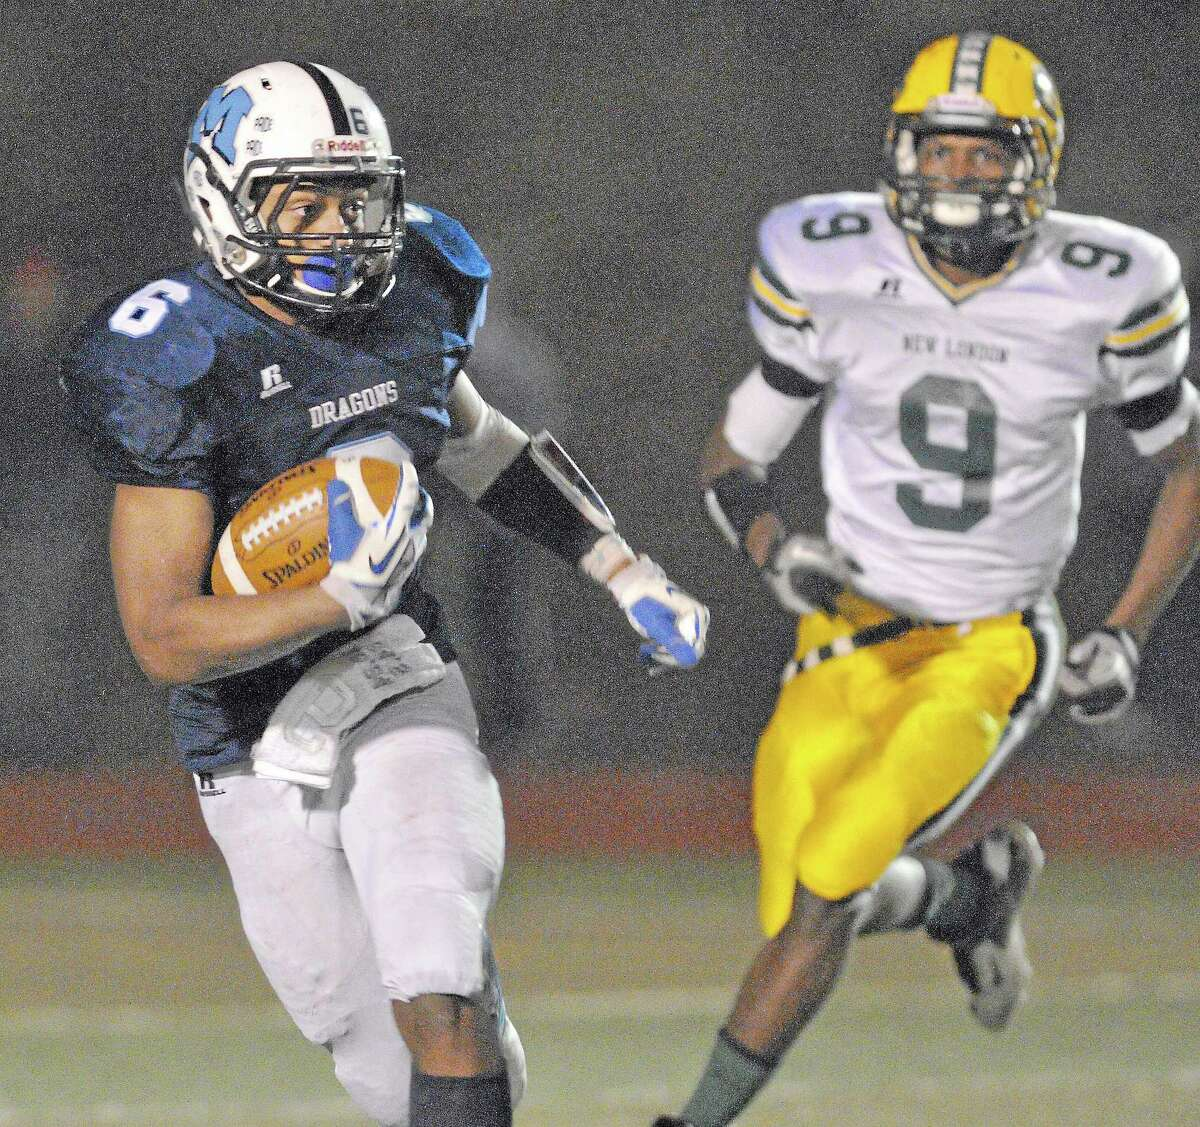 Middletown junior quarterback Dario R. Highsmith, Jr. clears New London's Tremell Scott in the CIAC Class L quarterfinal game Tuesday night at Rosek-Skubel Stadium at MHS. The Middletown Blue Dragons defeated the New London Whalers 49-14. Number 4 Middletown (11-1) will play #1 Darien (11-1) Saturday at Pomperaug. Catherine Avalone - The Middletown Press